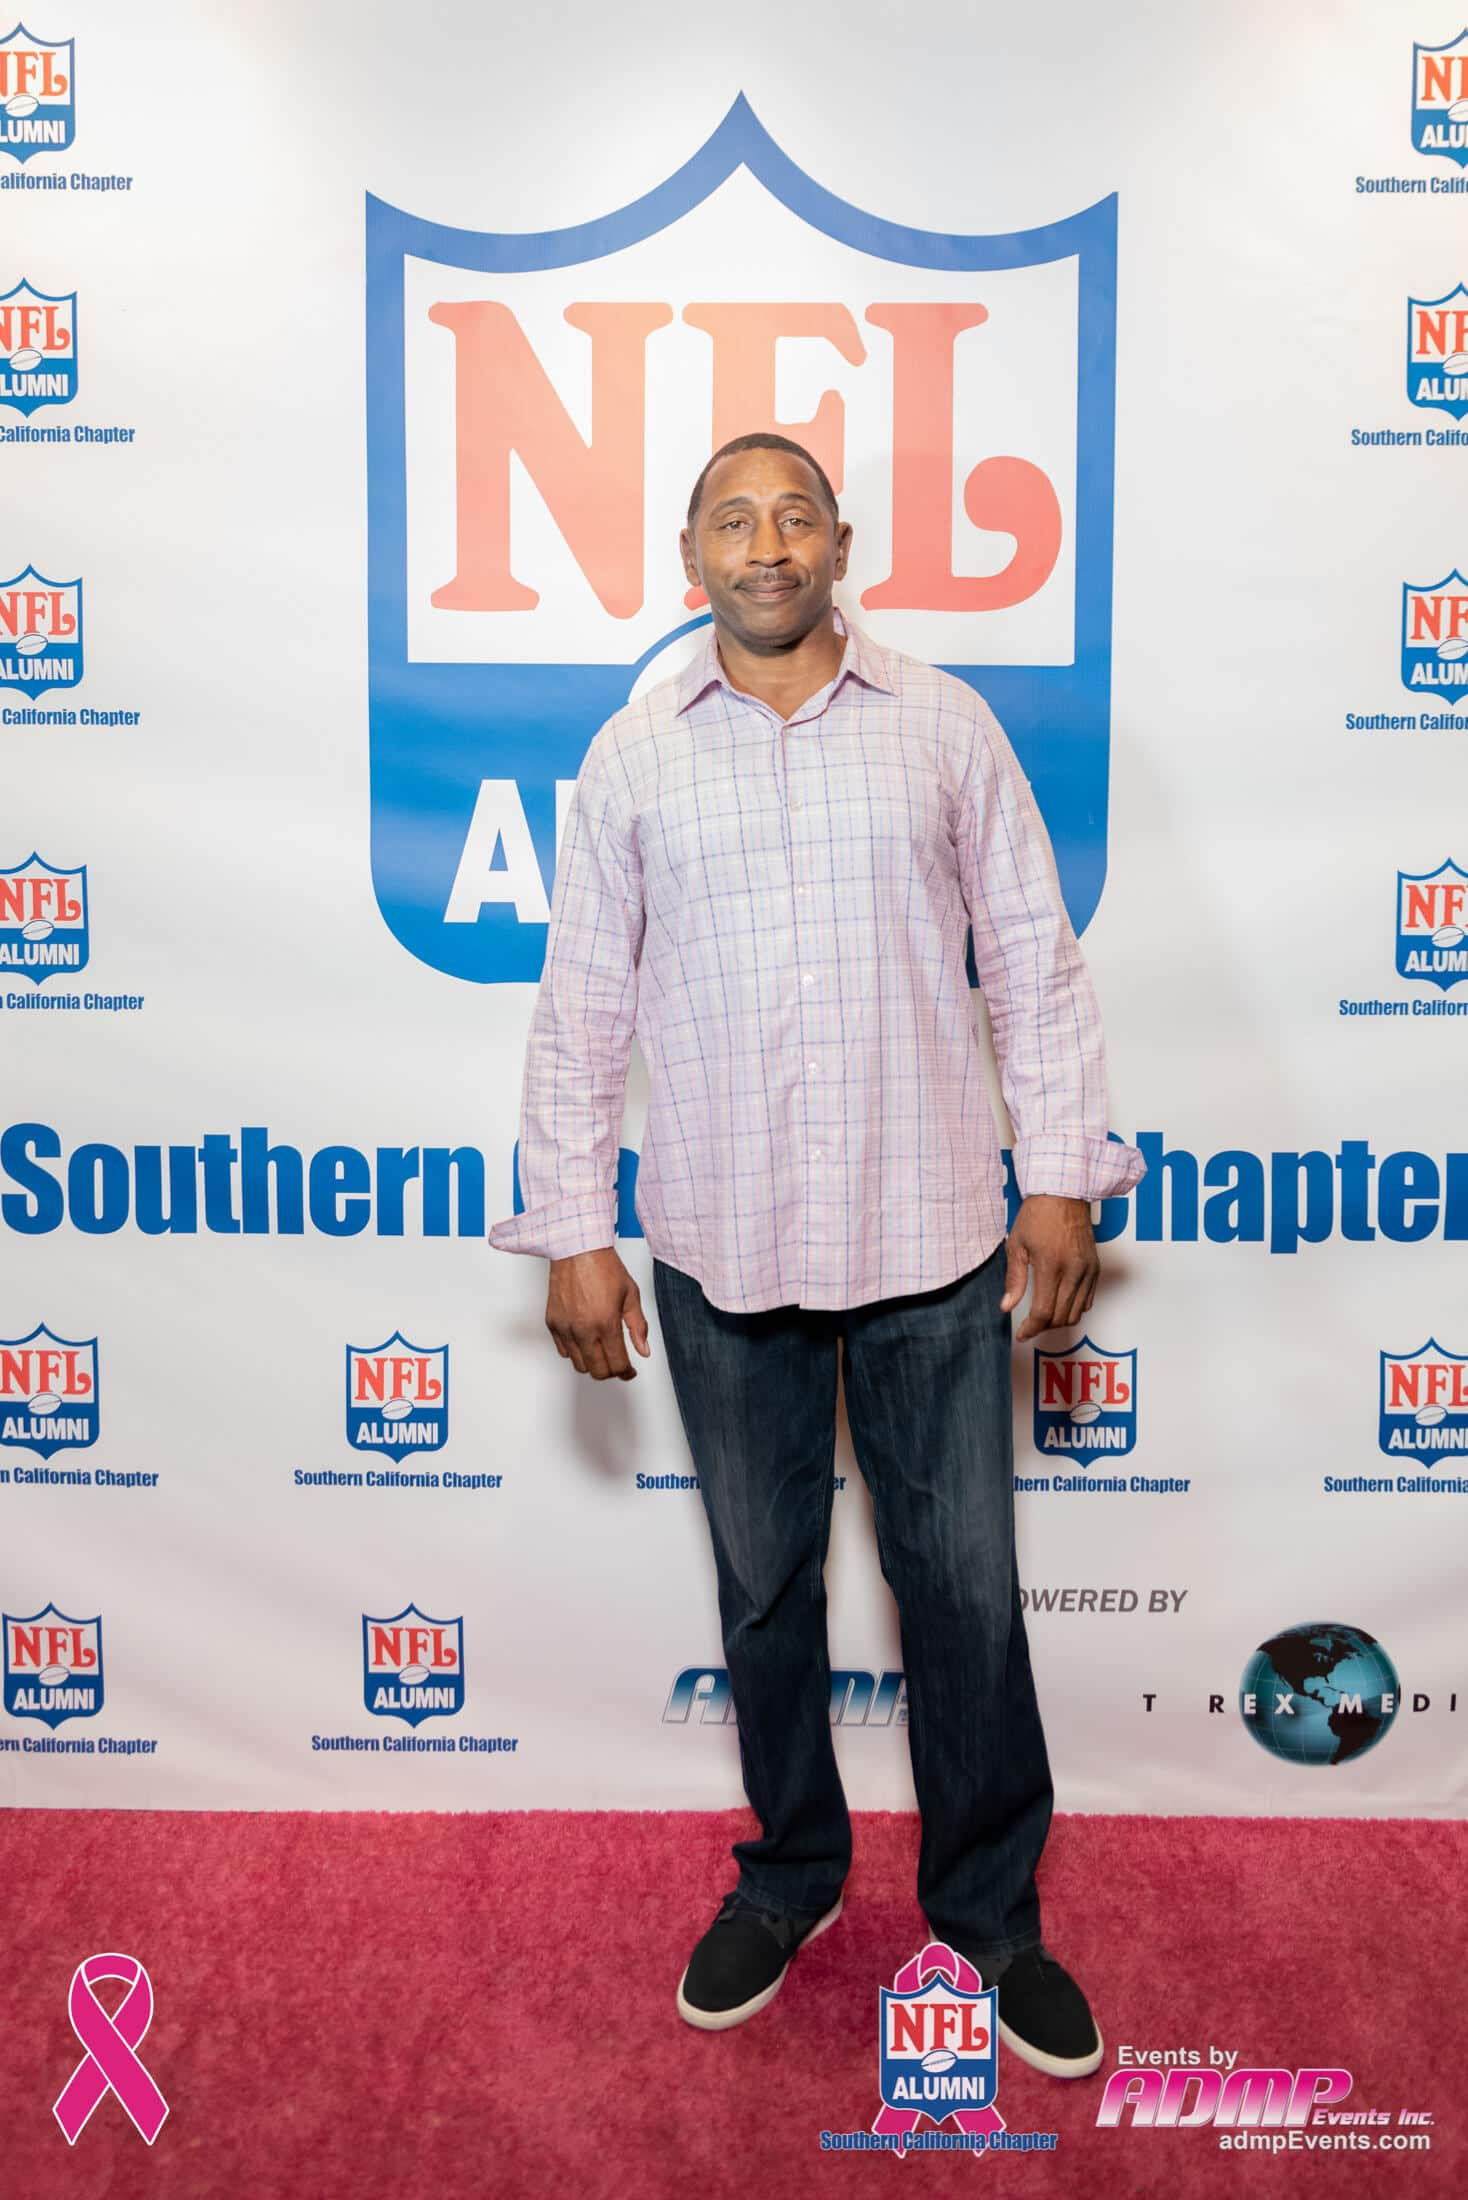 NFL Alumni SoCal Charity Event Series Breast Cancer Event 10-14-19-272